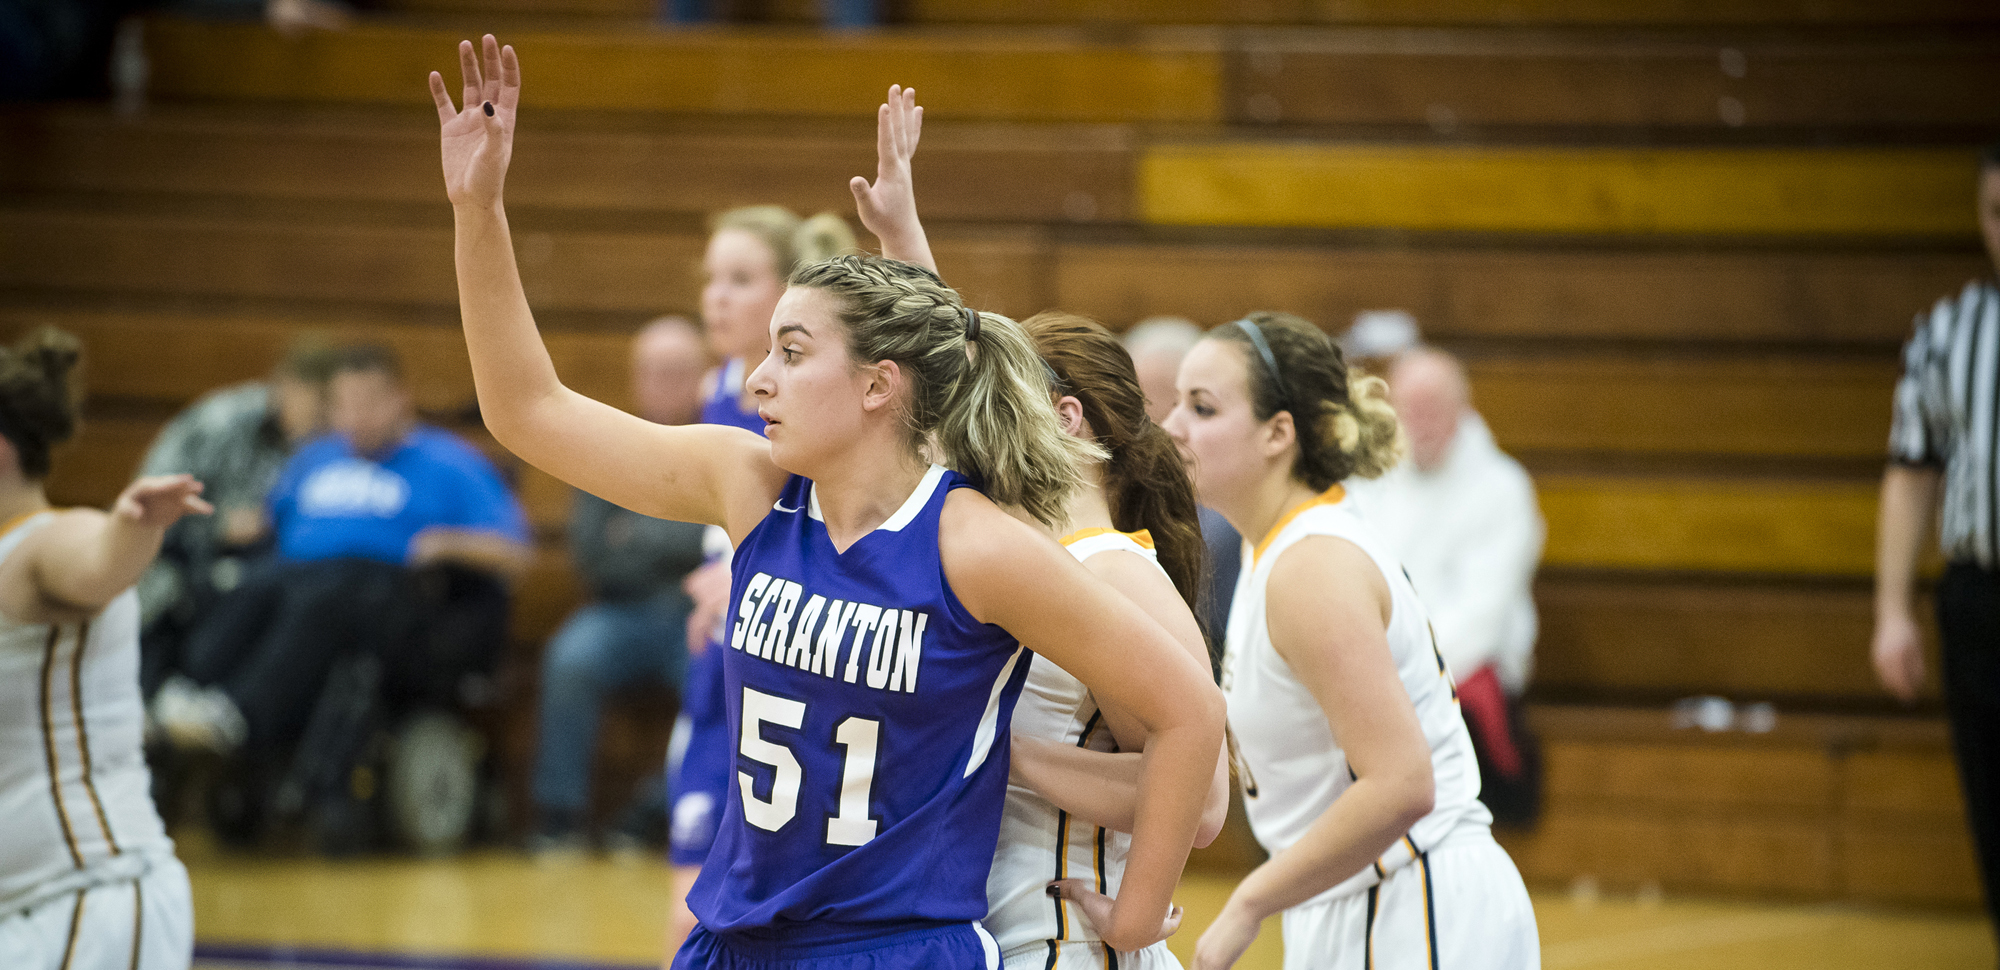 Sophomore center Sofia Recupero scored a game-high 21 points to lead the Lady Royals to victory in Friday night's season opener.